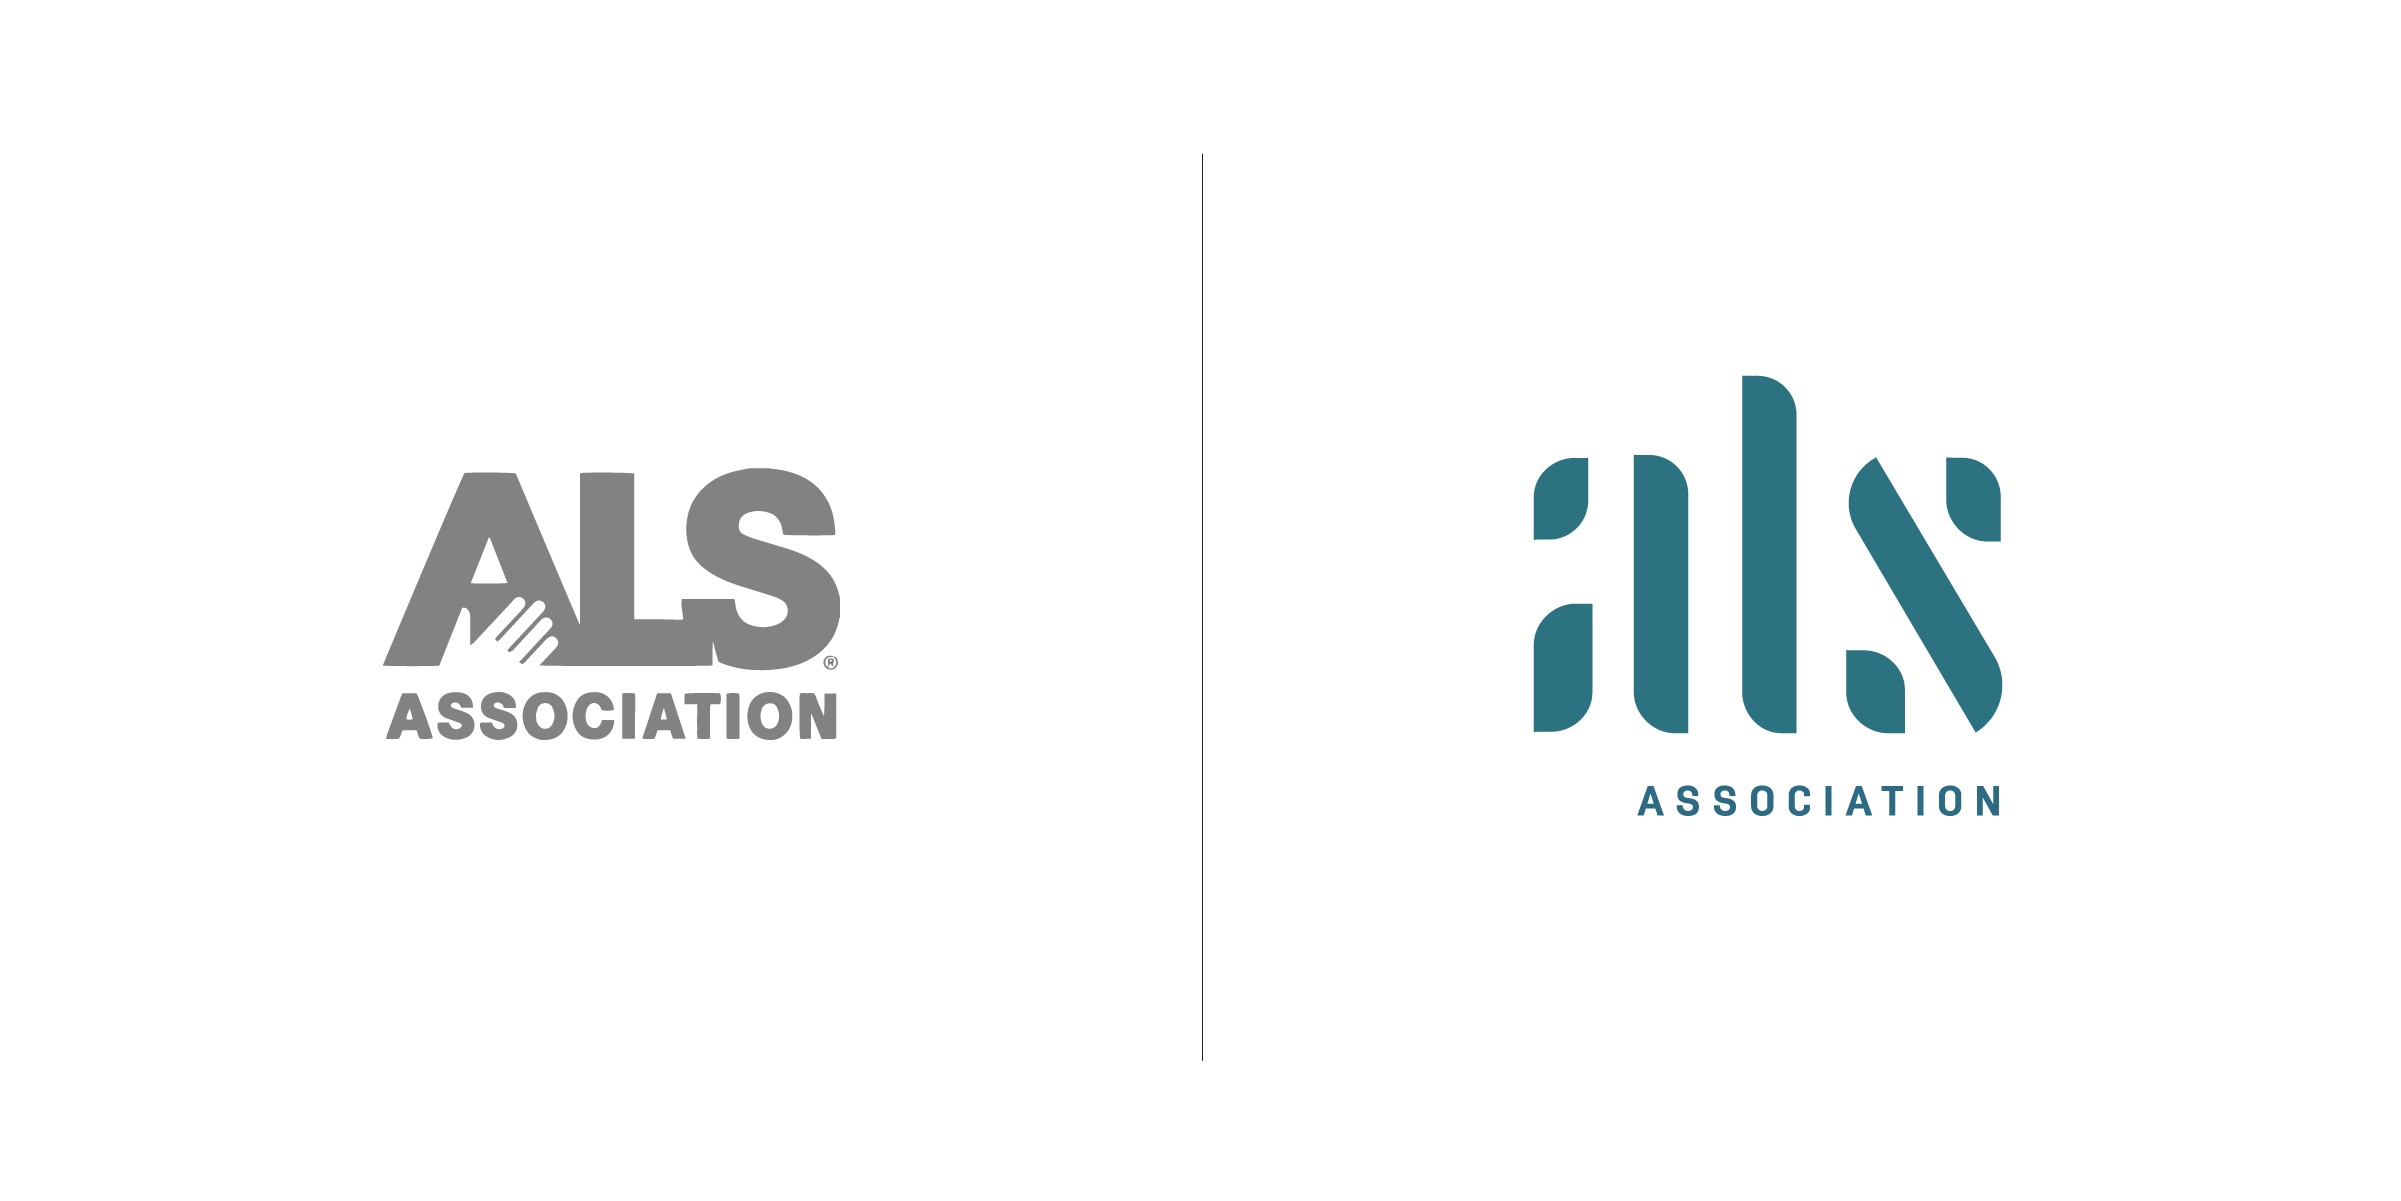 The client —   MMB & The ALS Association  The goal — To leverage the success and momentum of the Ice Bucket challenge to create an educational initiative that raises awareness and financial support for this tragic disease and to rally Americans to join the fight against ALS. Using the strategic positioning 'Decoding ALS', we created a unique logo concept to not only bring better understanding to the disease, but hope to those afflicted. This modern, strategic and sensitive approach to the new logo would help to continue increasing awareness and fund the critical research needed to decipher the disease and restore people's ability to speak, eat, write, walk, to fully function again.